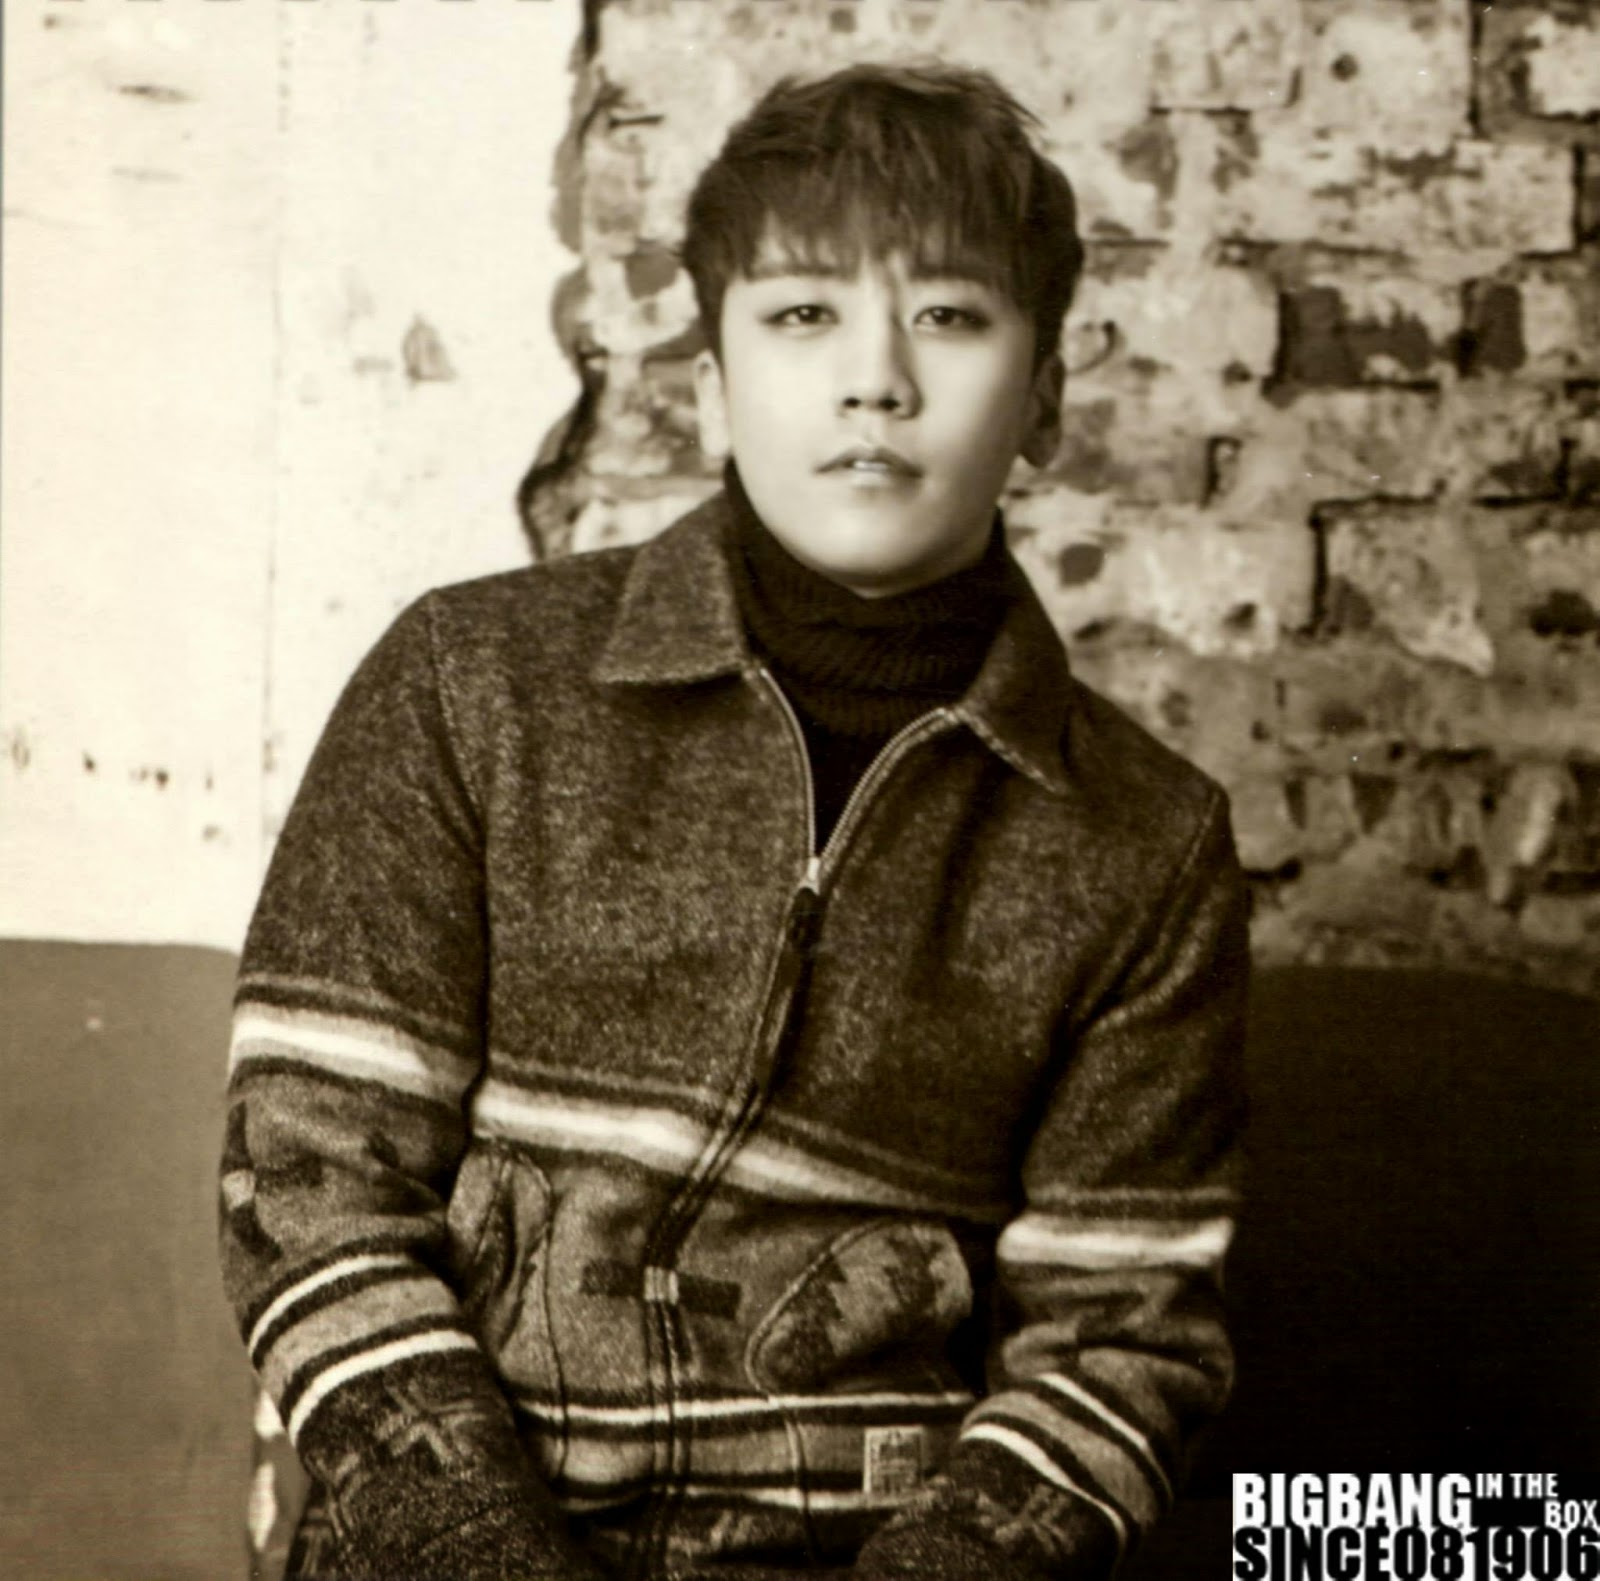 Scans: Big Bang's 2015 Welcoming Collection [PHOTOS]  Scans: Big Bang's 2015 Welcoming Collection [PHOTOS]  Scans: Big Bang's 2015 Welcoming Collection [PHOTOS]  Scans: Big Bang's 2015 Welcoming Collection [PHOTOS]  Scans: Big Bang's 2015 Welcoming Collection [PHOTOS]  Scans: Big Bang's 2015 Welcoming Collection [PHOTOS]  Scans: Big Bang's 2015 Welcoming Collection [PHOTOS]  Scans: Big Bang's 2015 Welcoming Collection [PHOTOS]  Scans: Big Bang's 2015 Welcoming Collection [PHOTOS]  Scans: Big Bang's 2015 Welcoming Collection [PHOTOS]  Scans: Big Bang's 2015 Welcoming Collection [PHOTOS]  Scans: Big Bang's 2015 Welcoming Collection [PHOTOS]  Scans: Big Bang's 2015 Welcoming Collection [PHOTOS]  Scans: Big Bang's 2015 Welcoming Collection [PHOTOS]